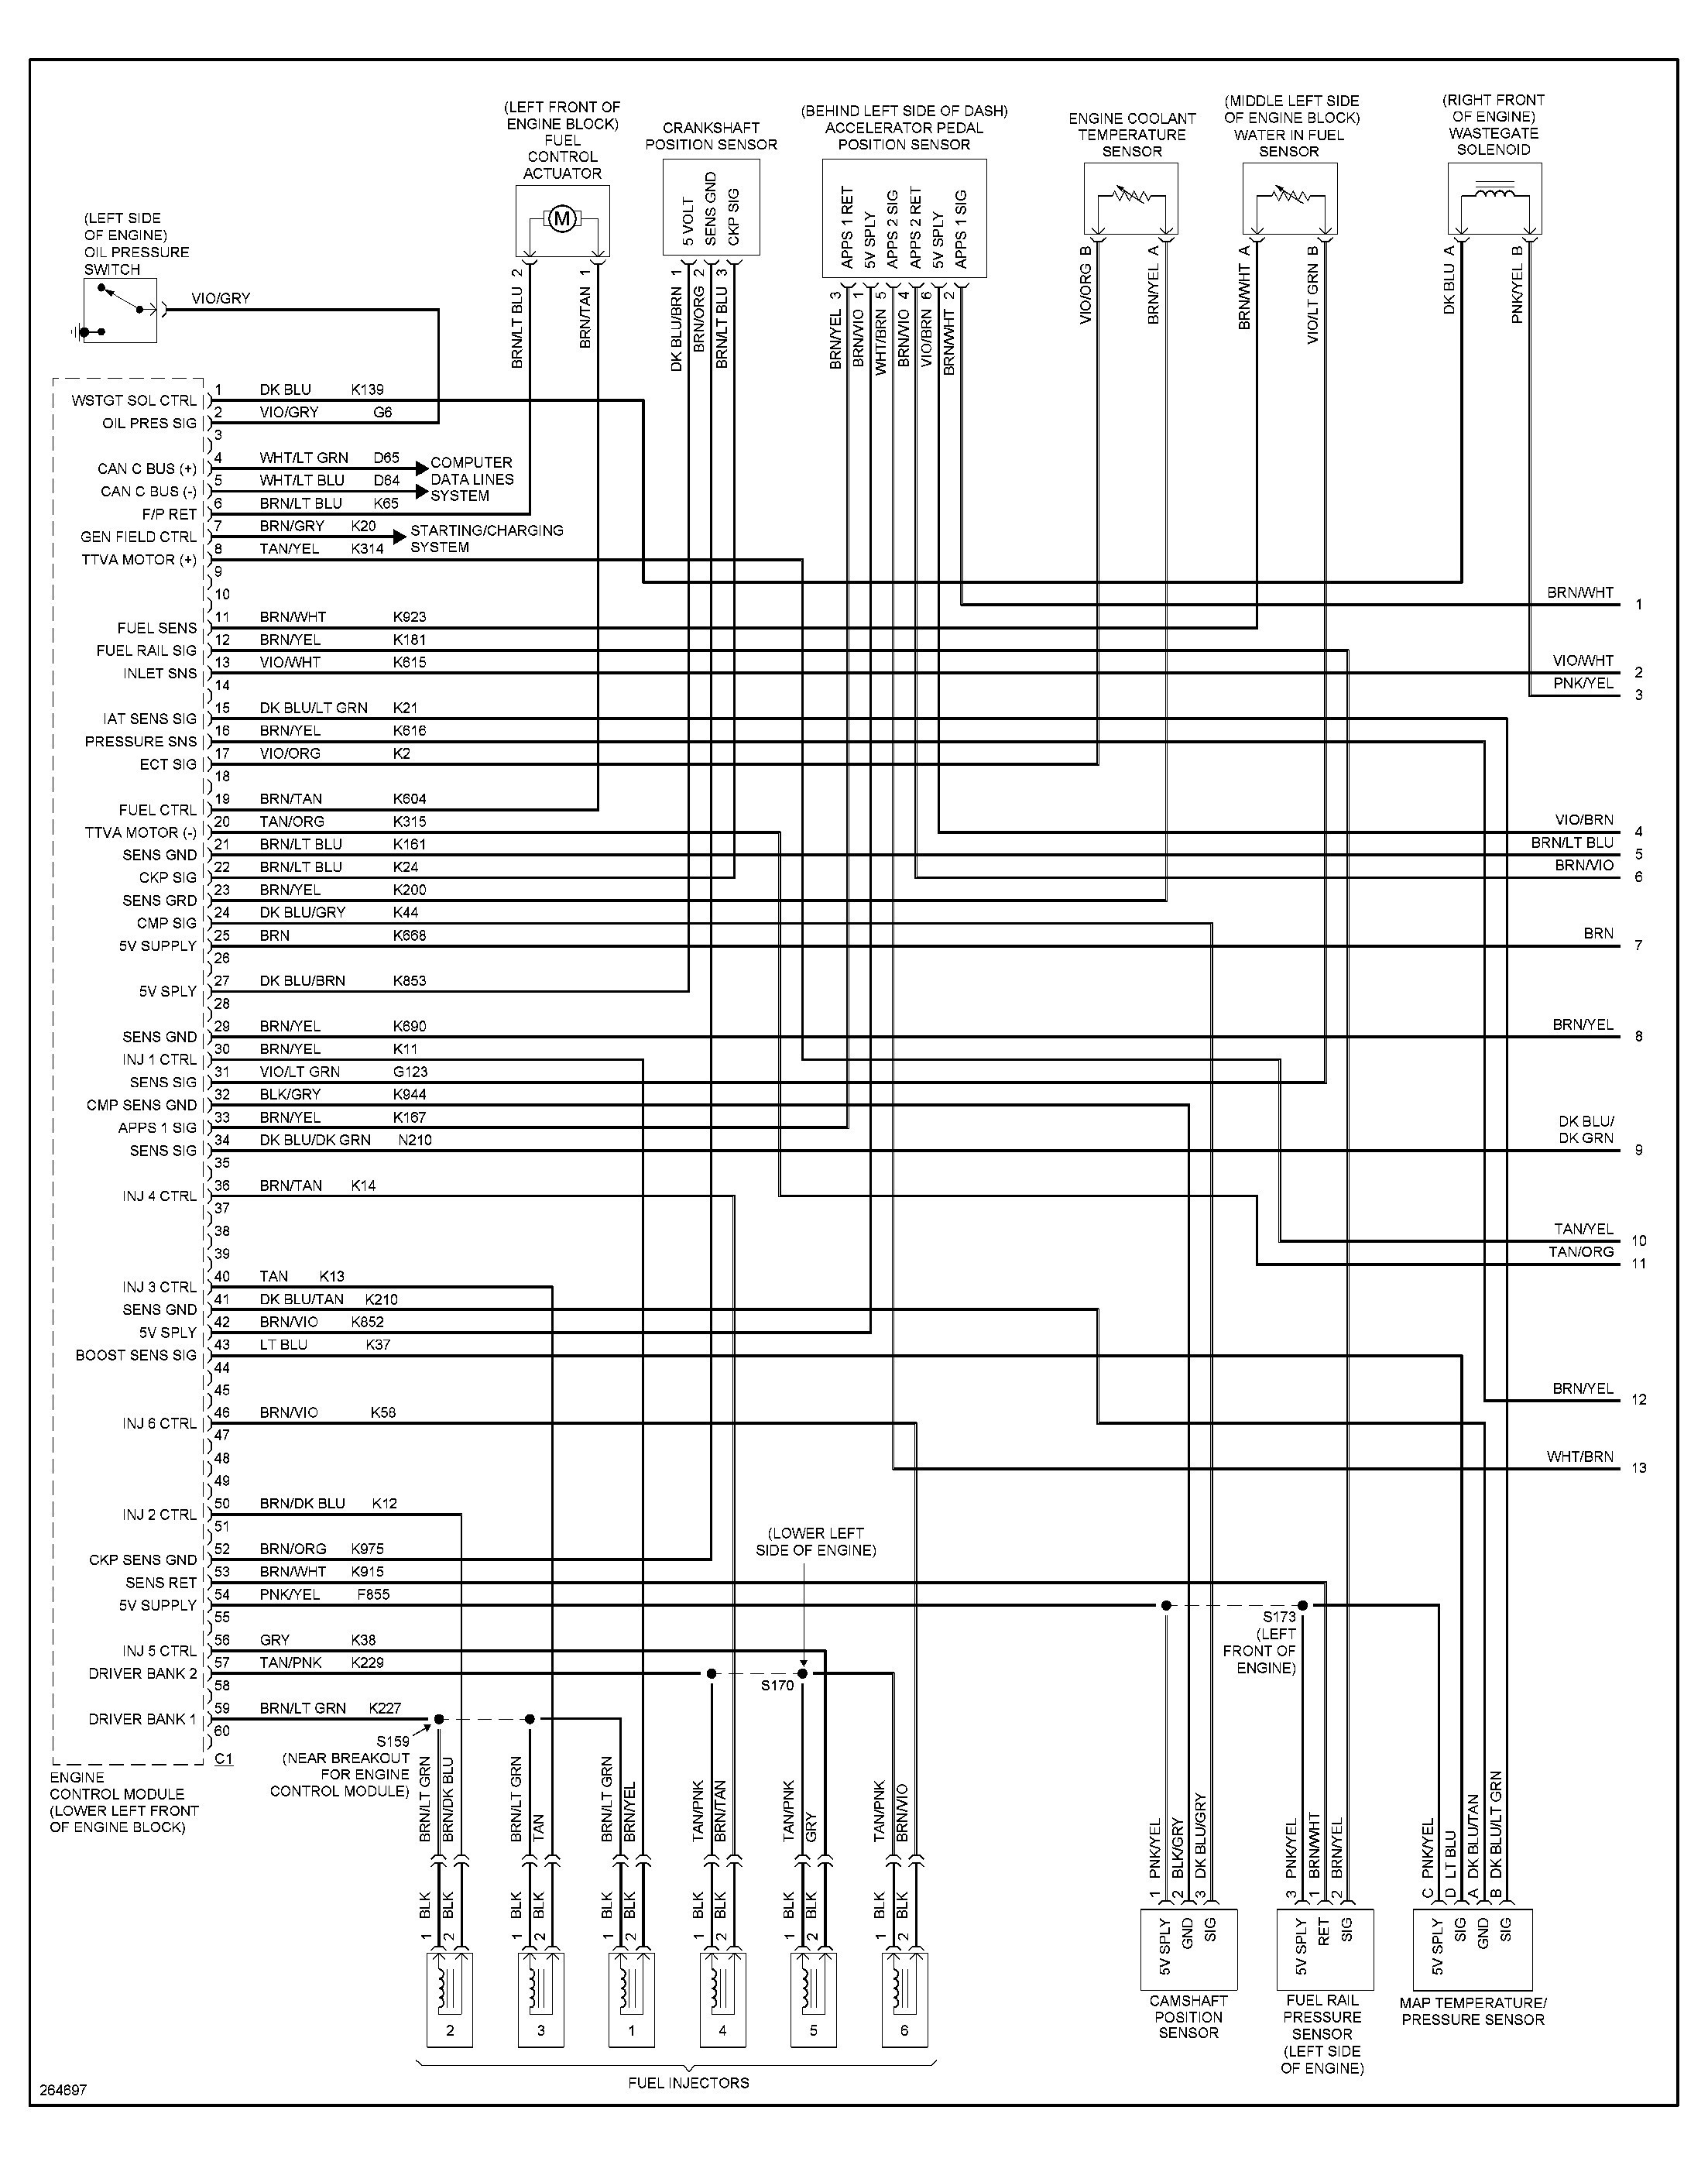 2005 dodge ram tail light wiring diagram wiring diagram database 2005 dodge ram tail light wiring diagram wiring diagram image 2001 dodge ram tail light wiring diagram 2005 dodge ram tail light wiring diagram cheapraybanclubmaster Image collections